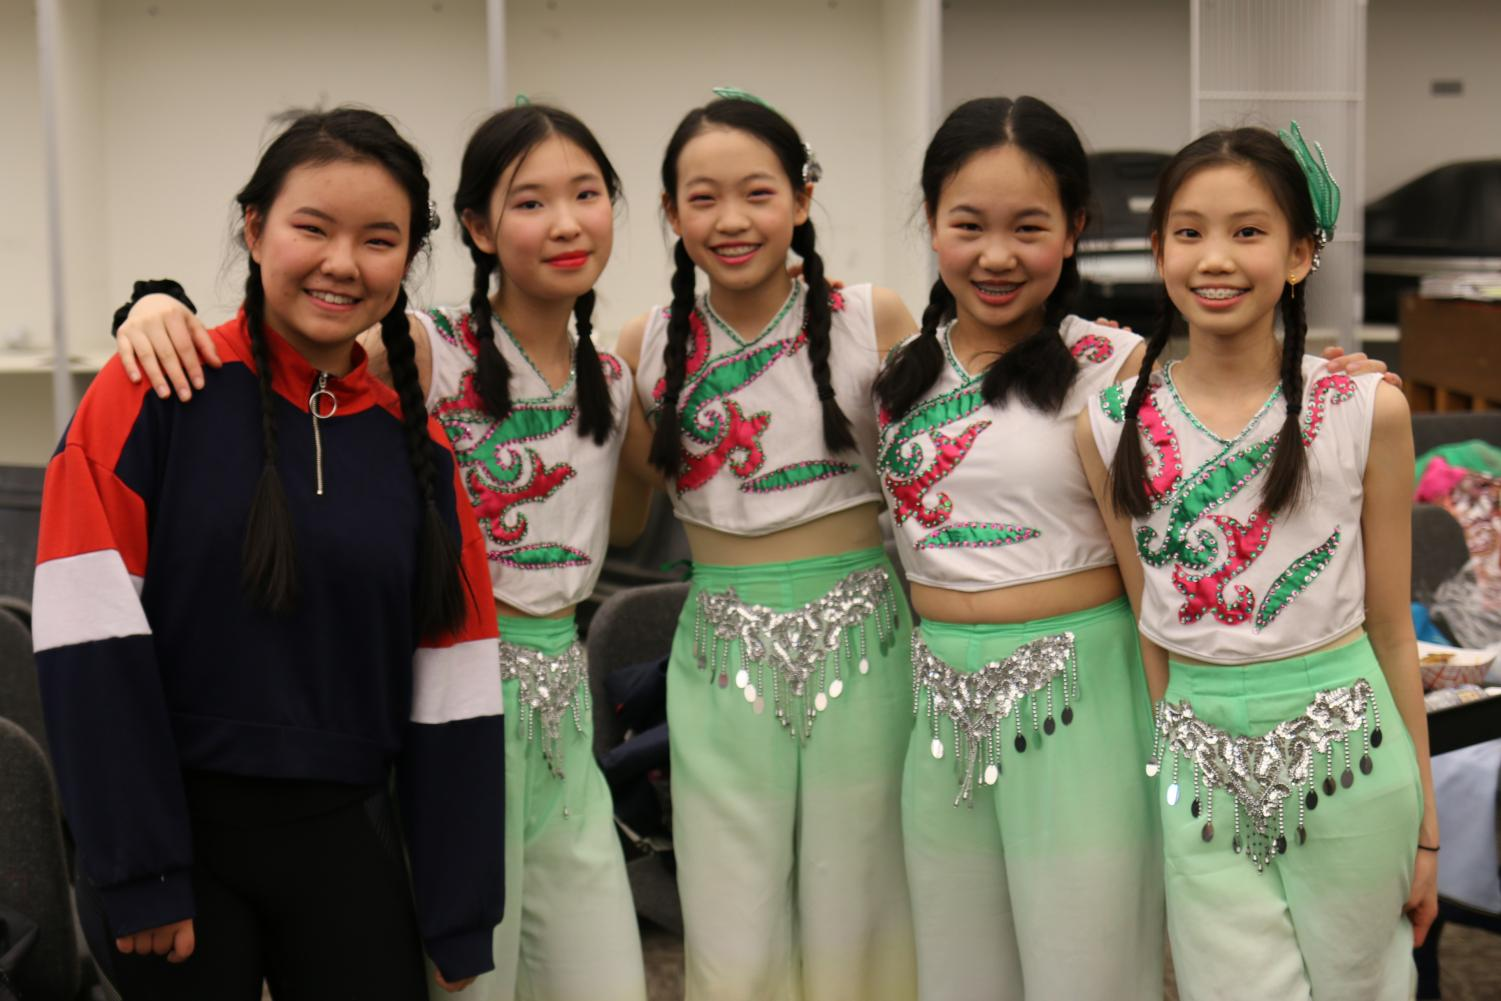 NA+students+showed+their+dancing+skills+by+performing+The+Lotus%2C+an+elegant+dance+that+requires+tons+of+concentration.